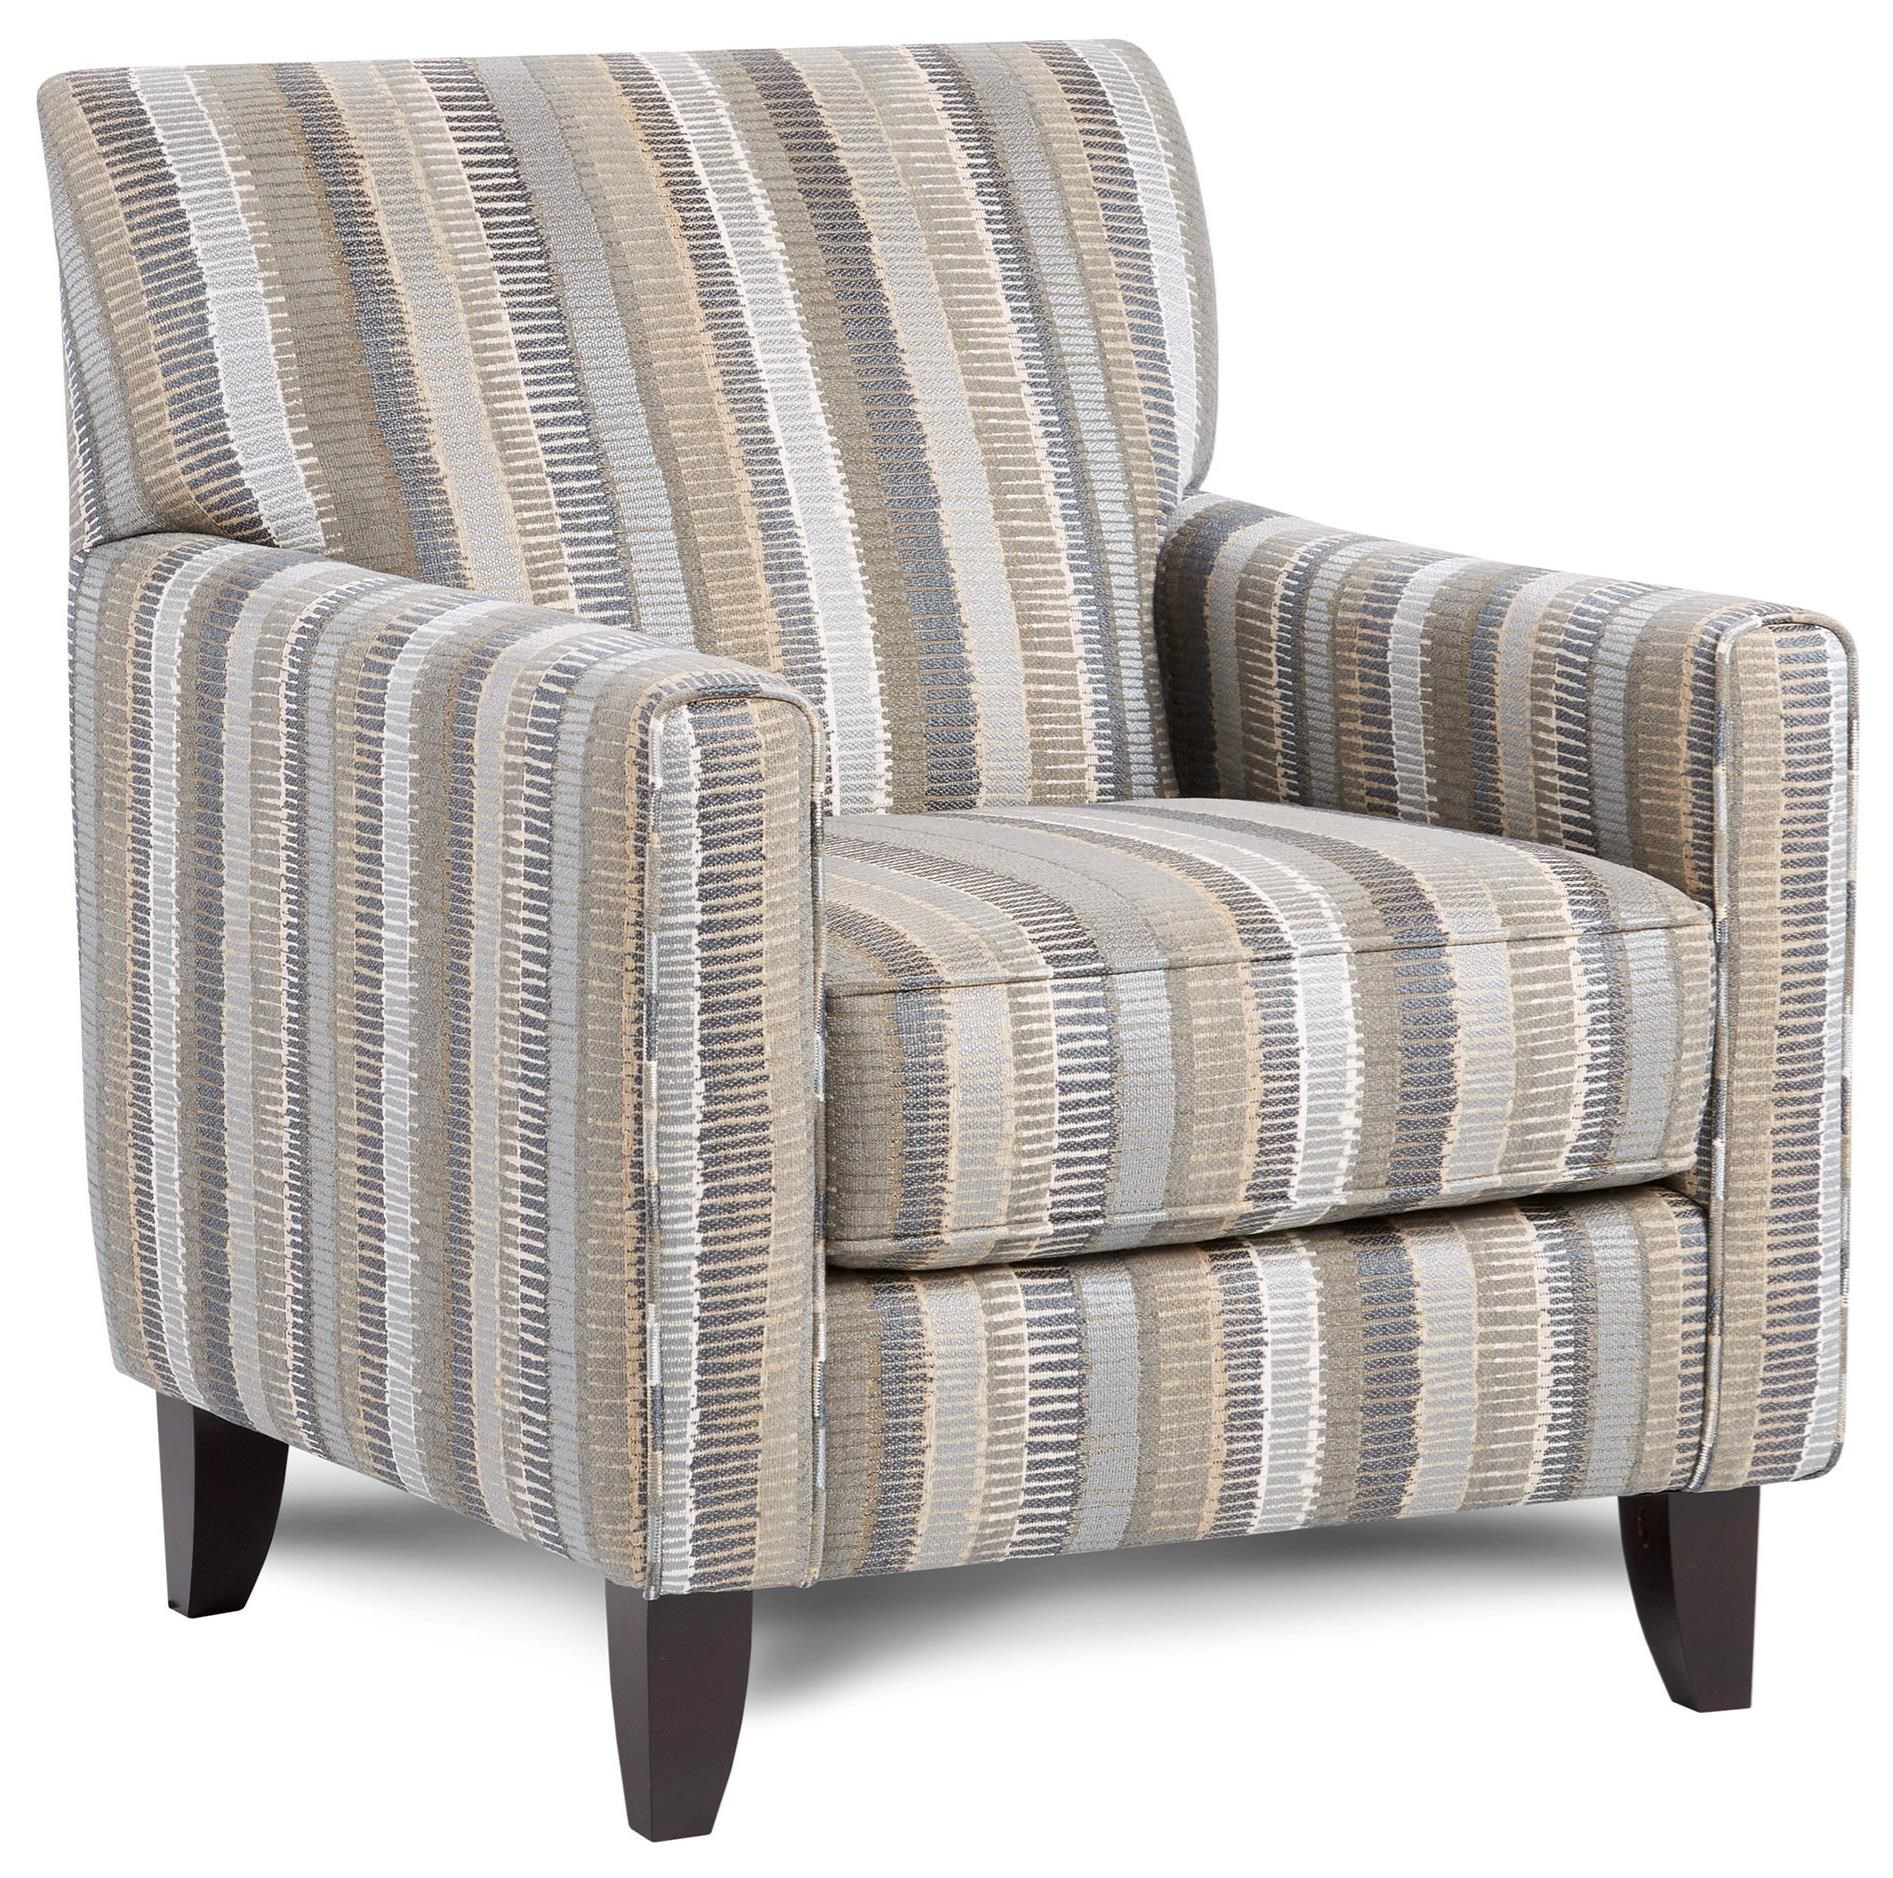 702 Accent Chair by FN at Lindy's Furniture Company